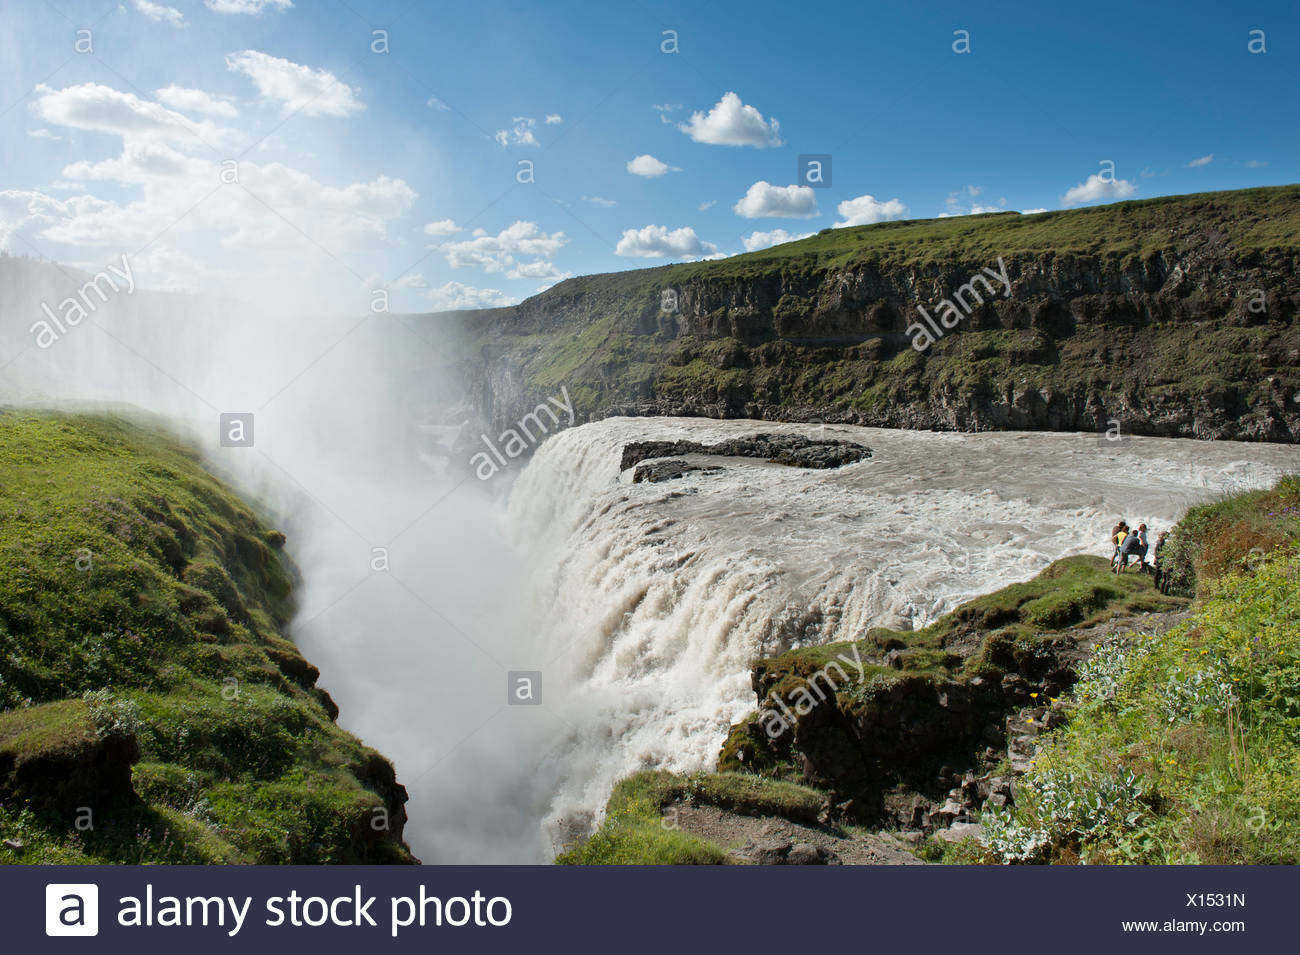 Large waterfall Gullfoss, Hvítá river with spray and rainbow, Golden Circle, Iceland, Scandinavia, Northern Europe, Europe - Stock Image